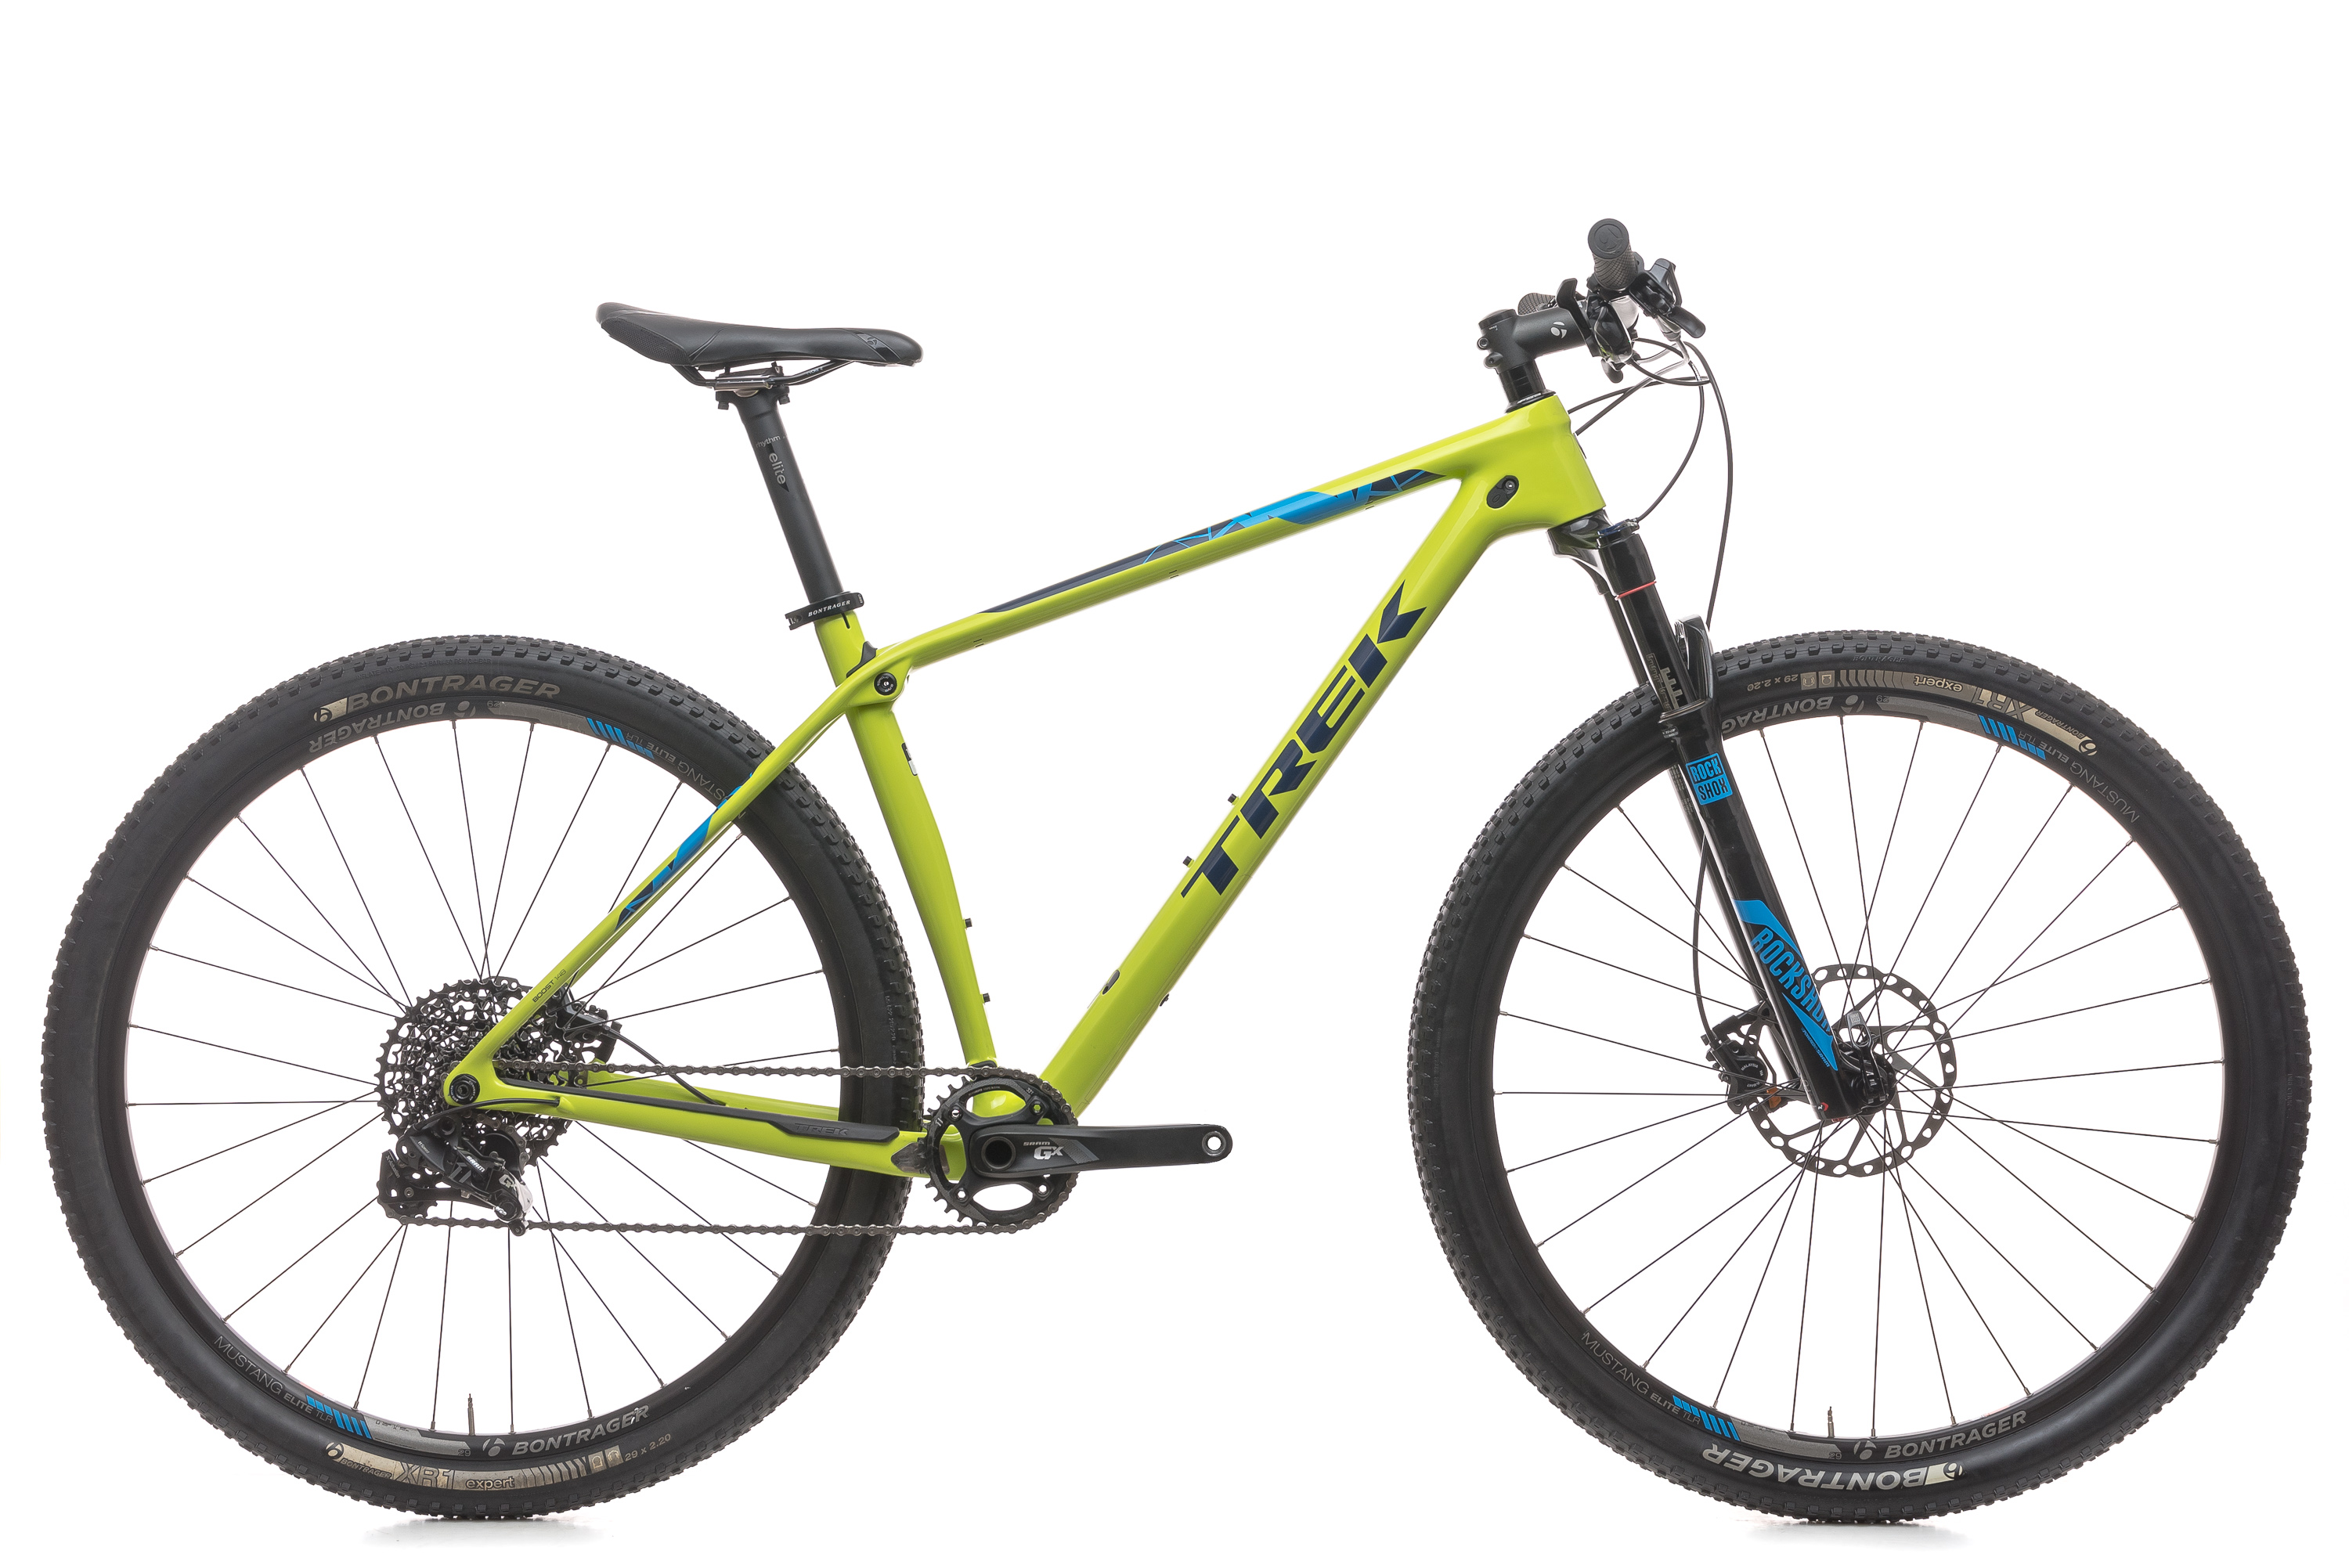 4b5abf1da 2016 Trek Pro Caliber 9.7 Mountain Bike 19.5in Large Carbon RockShox SRAM